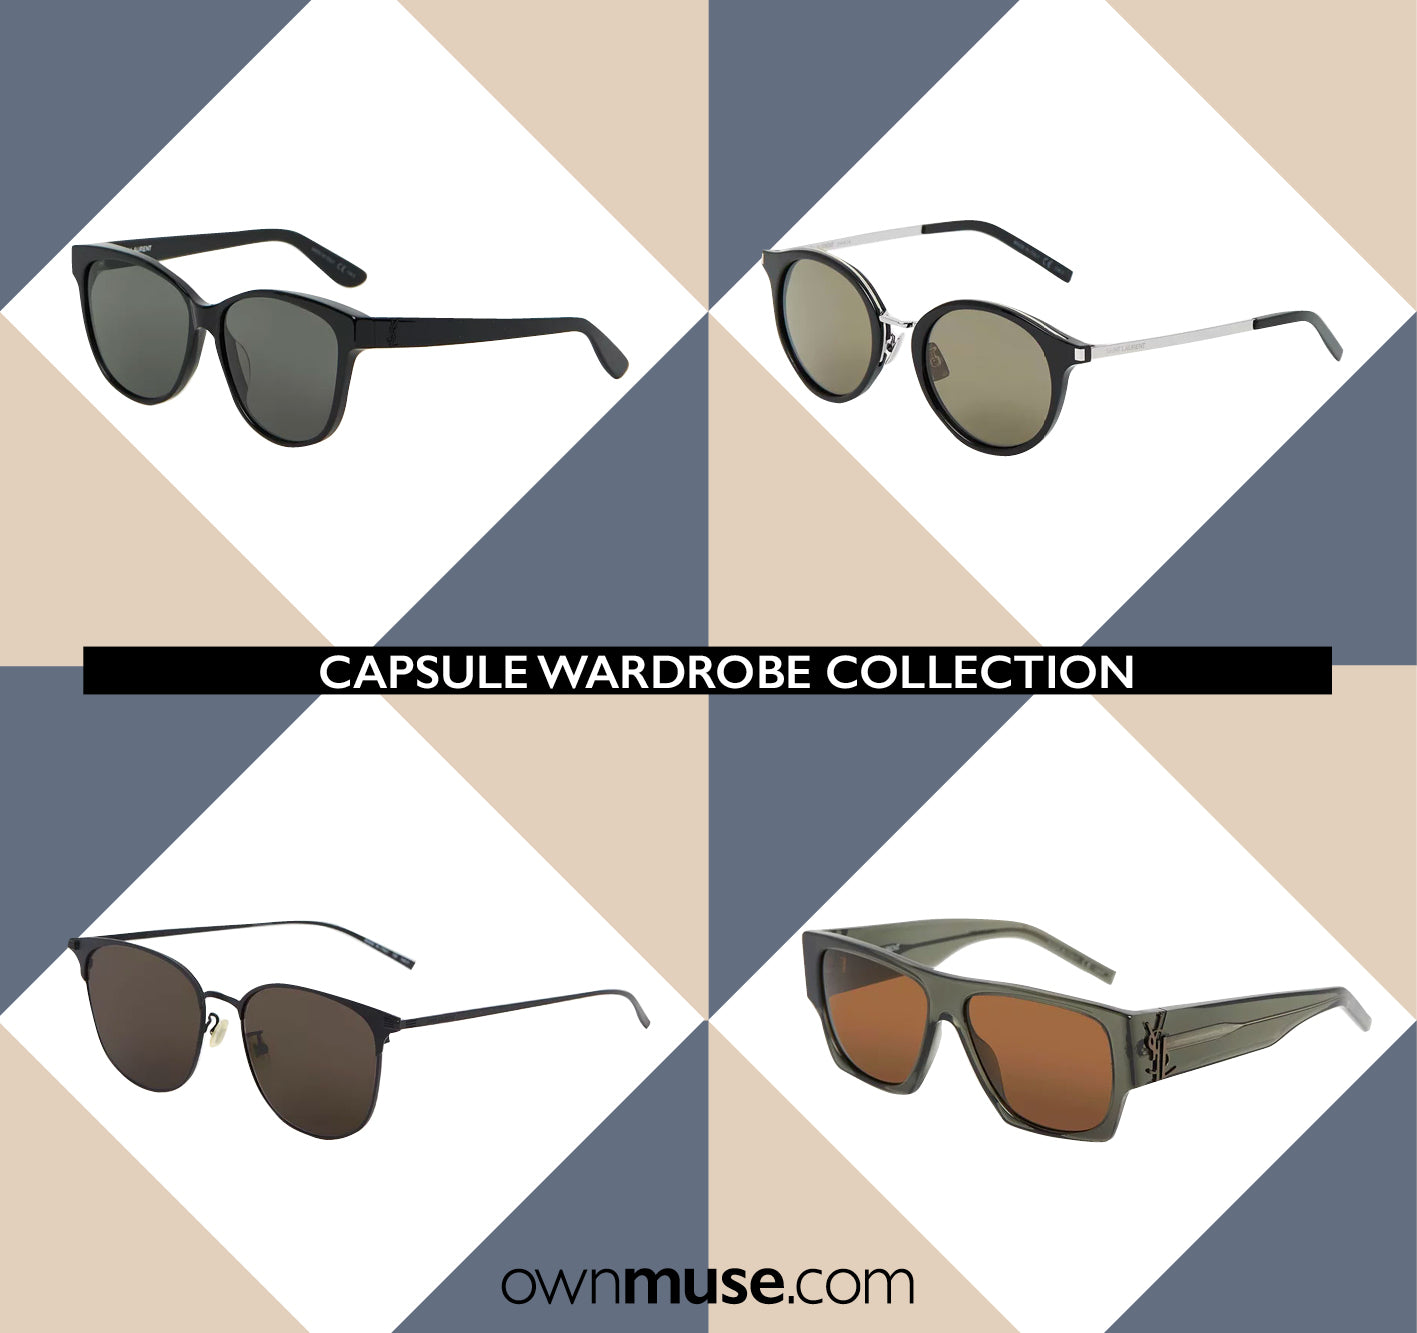 Capsule wardrobe collection - Statement Saint Laurent sunglasses